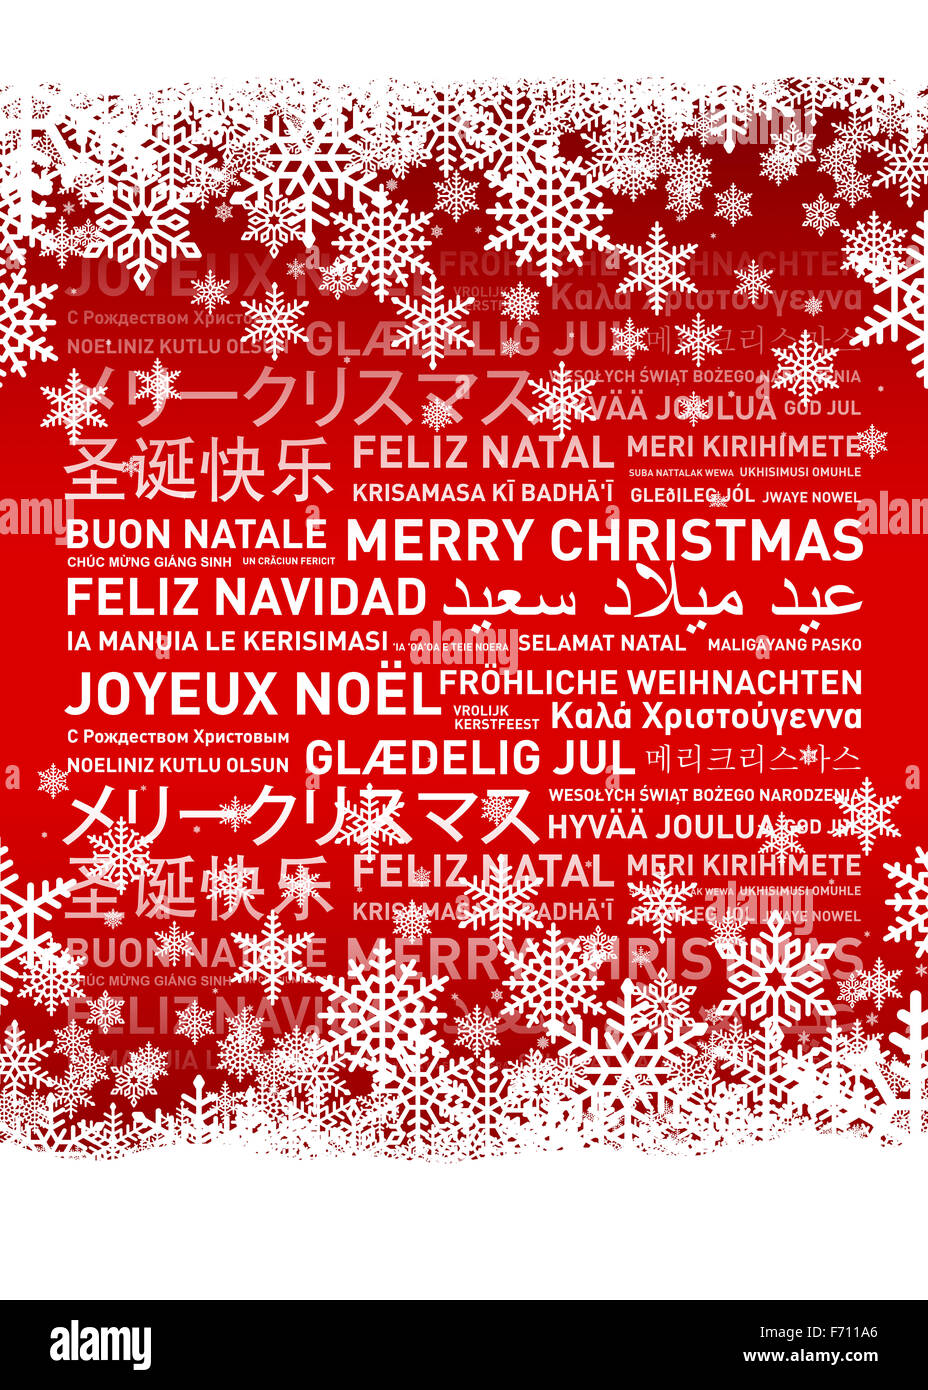 Merry Christmas In Different Languages.Merry Christmas From The World Different Languages